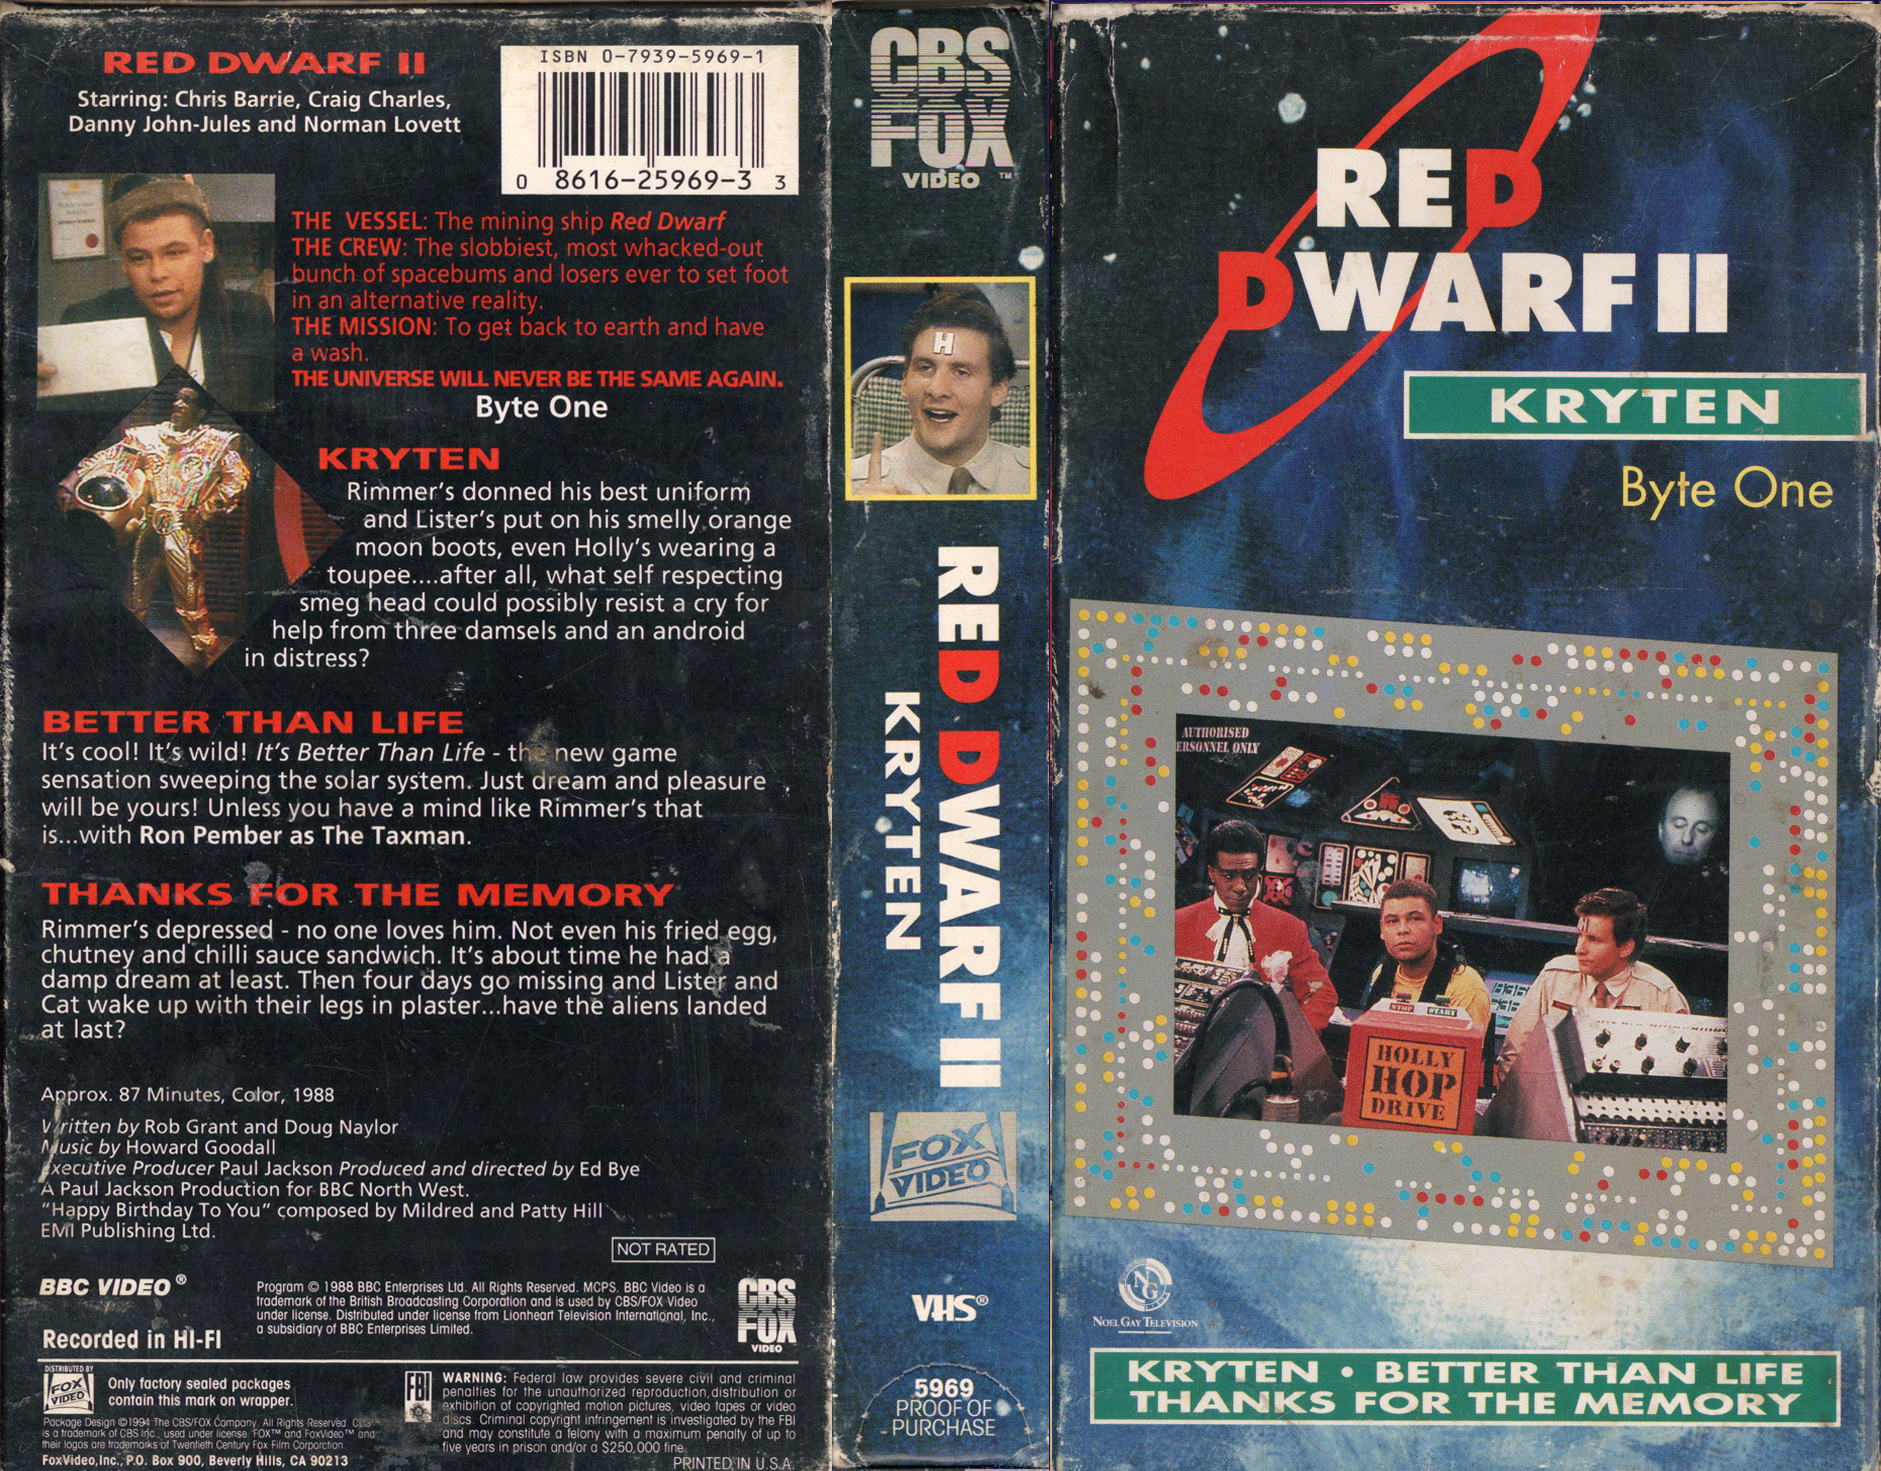 I played this VHS to Death! this looks like a slightly newer version of the one I had though which was all black.